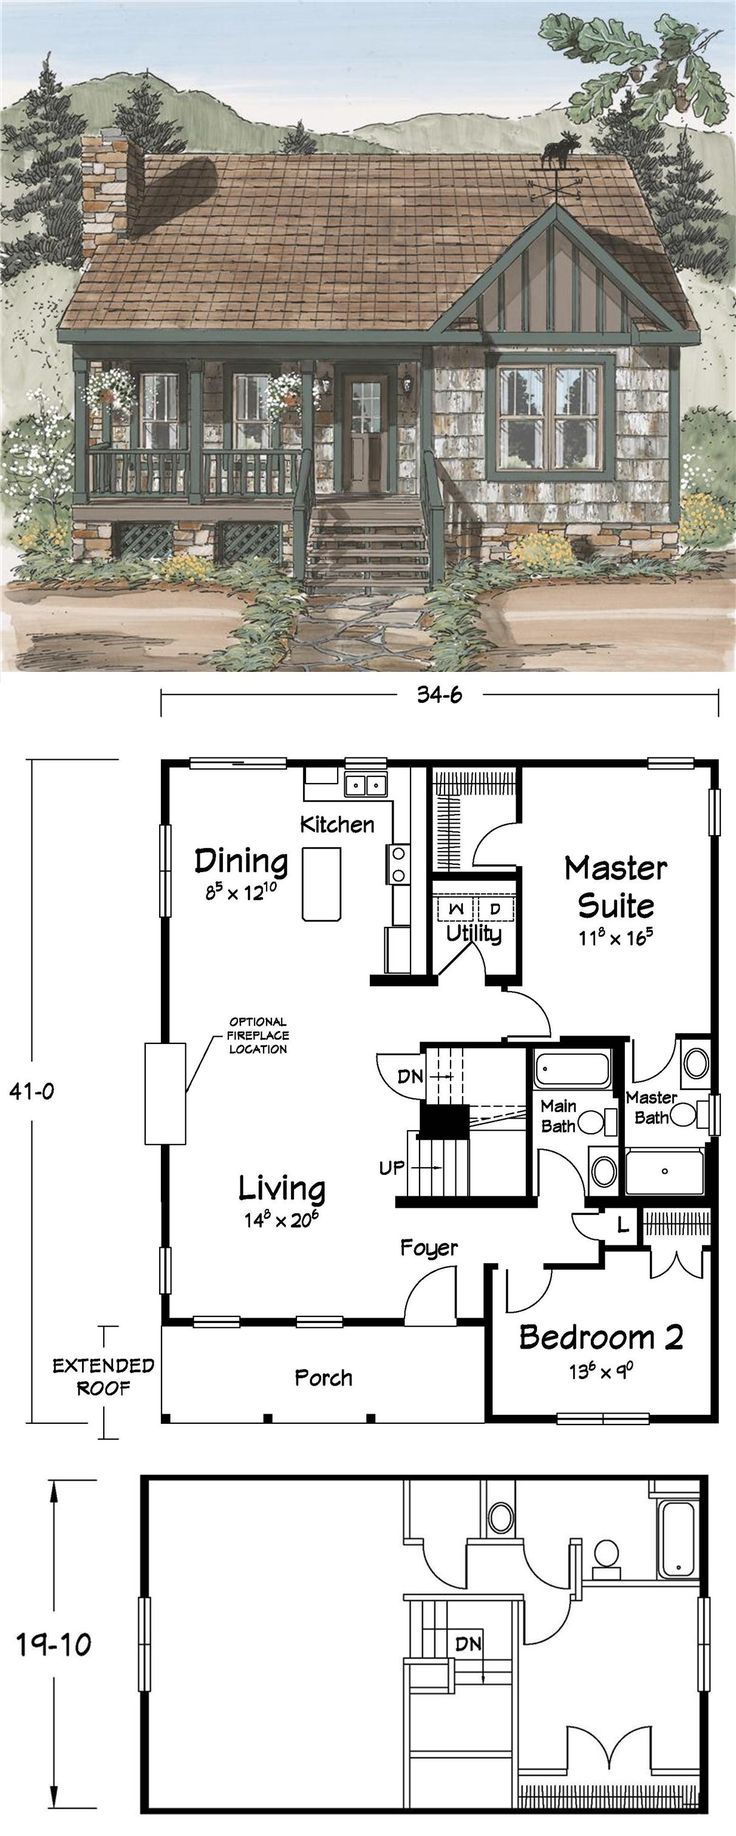 Cute floor plans tiny homes pinterest cabin small for Small house layout design